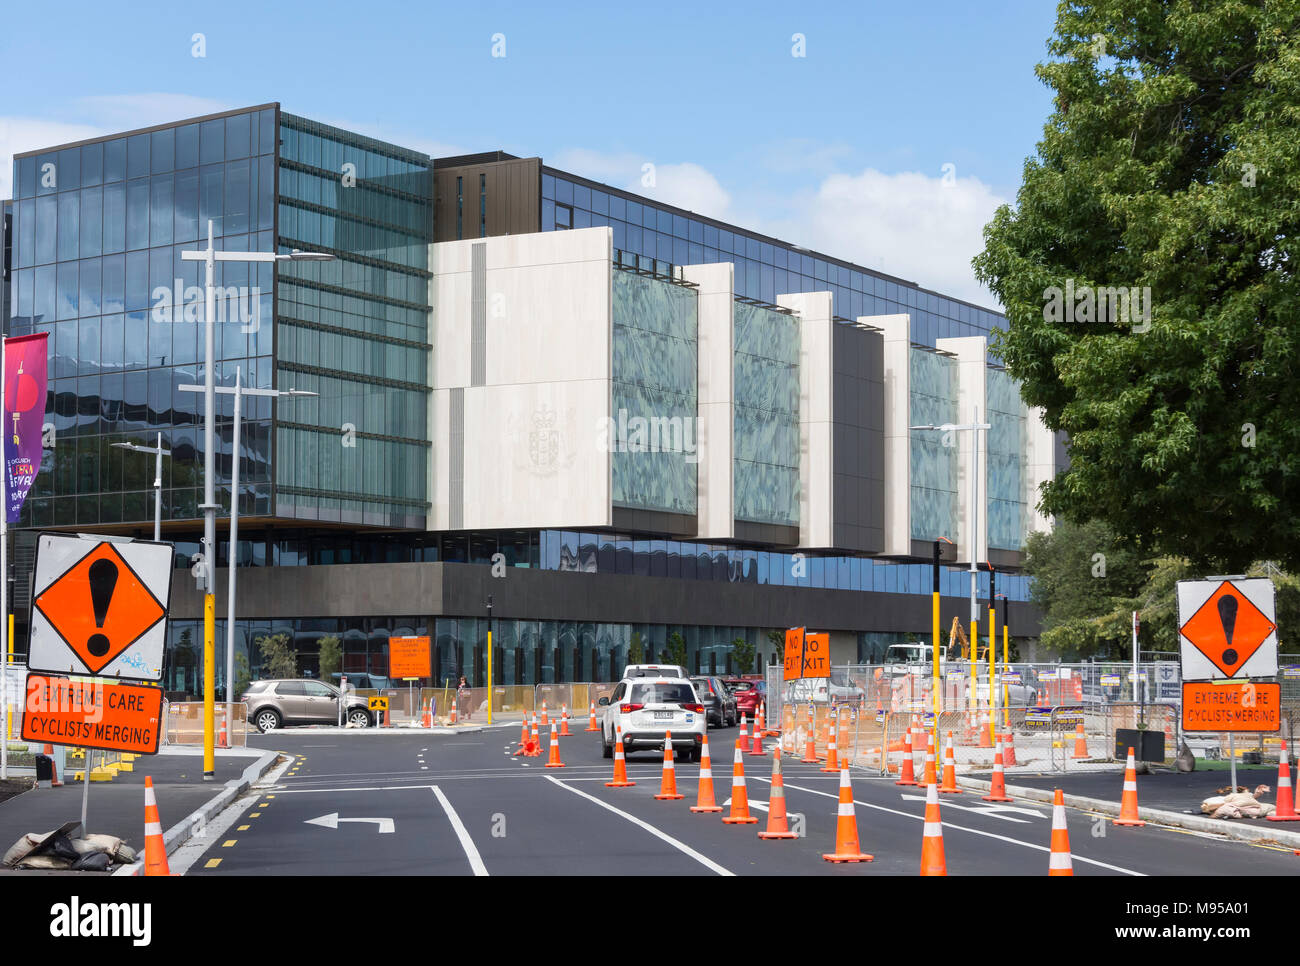 New Christchurch Justice and Emergency Services Precinct building, Tuam Street, Christchurch Central, Christchurch, Canterbury, New Zealand - Stock Image